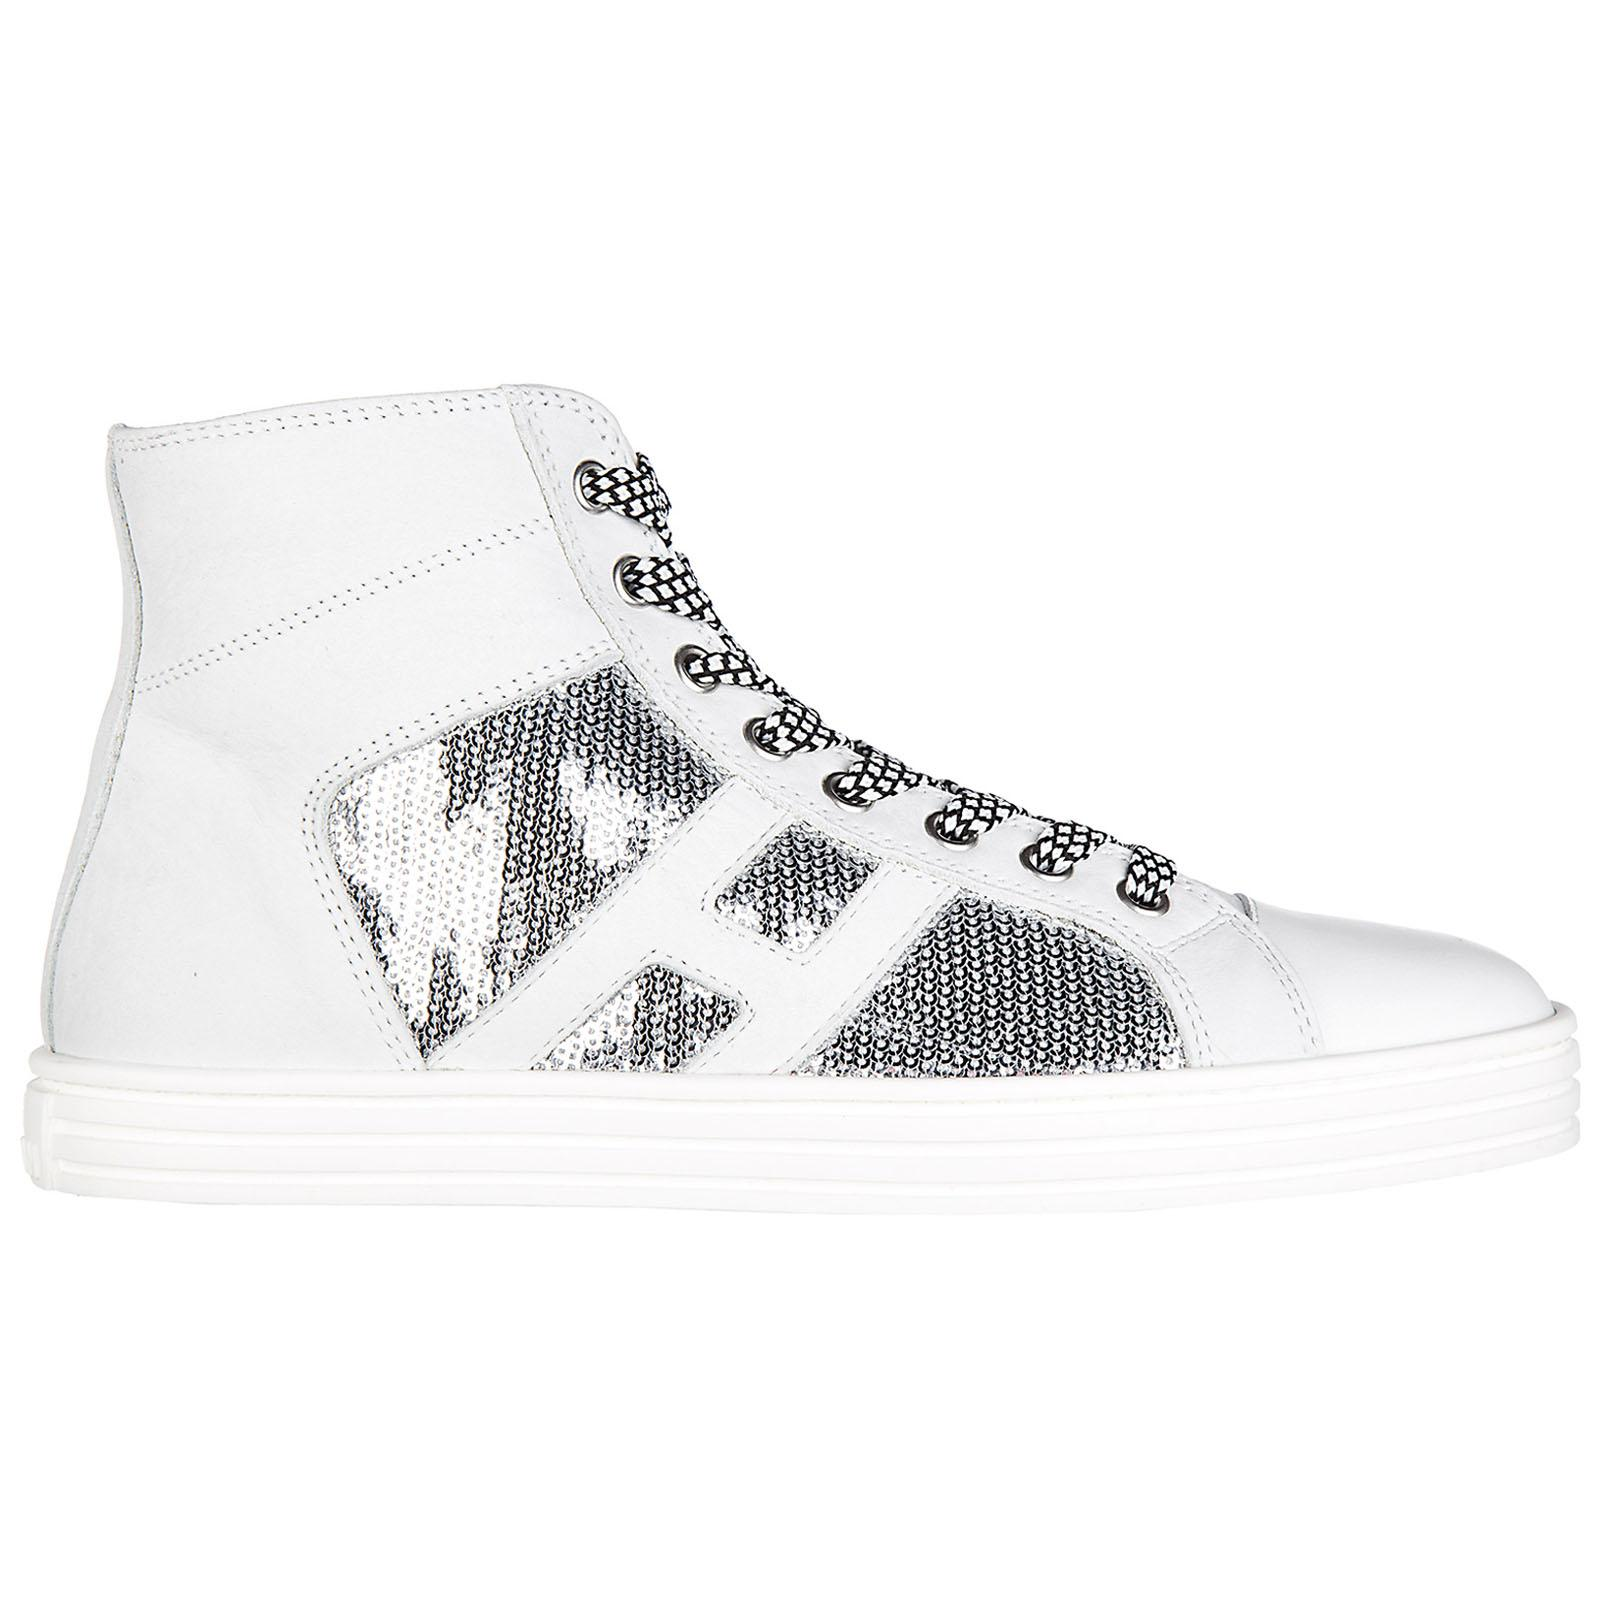 ad6e012754b Hogan Rebel Shoes High Top Suede Trainers Sneakers R141 Laterale ...